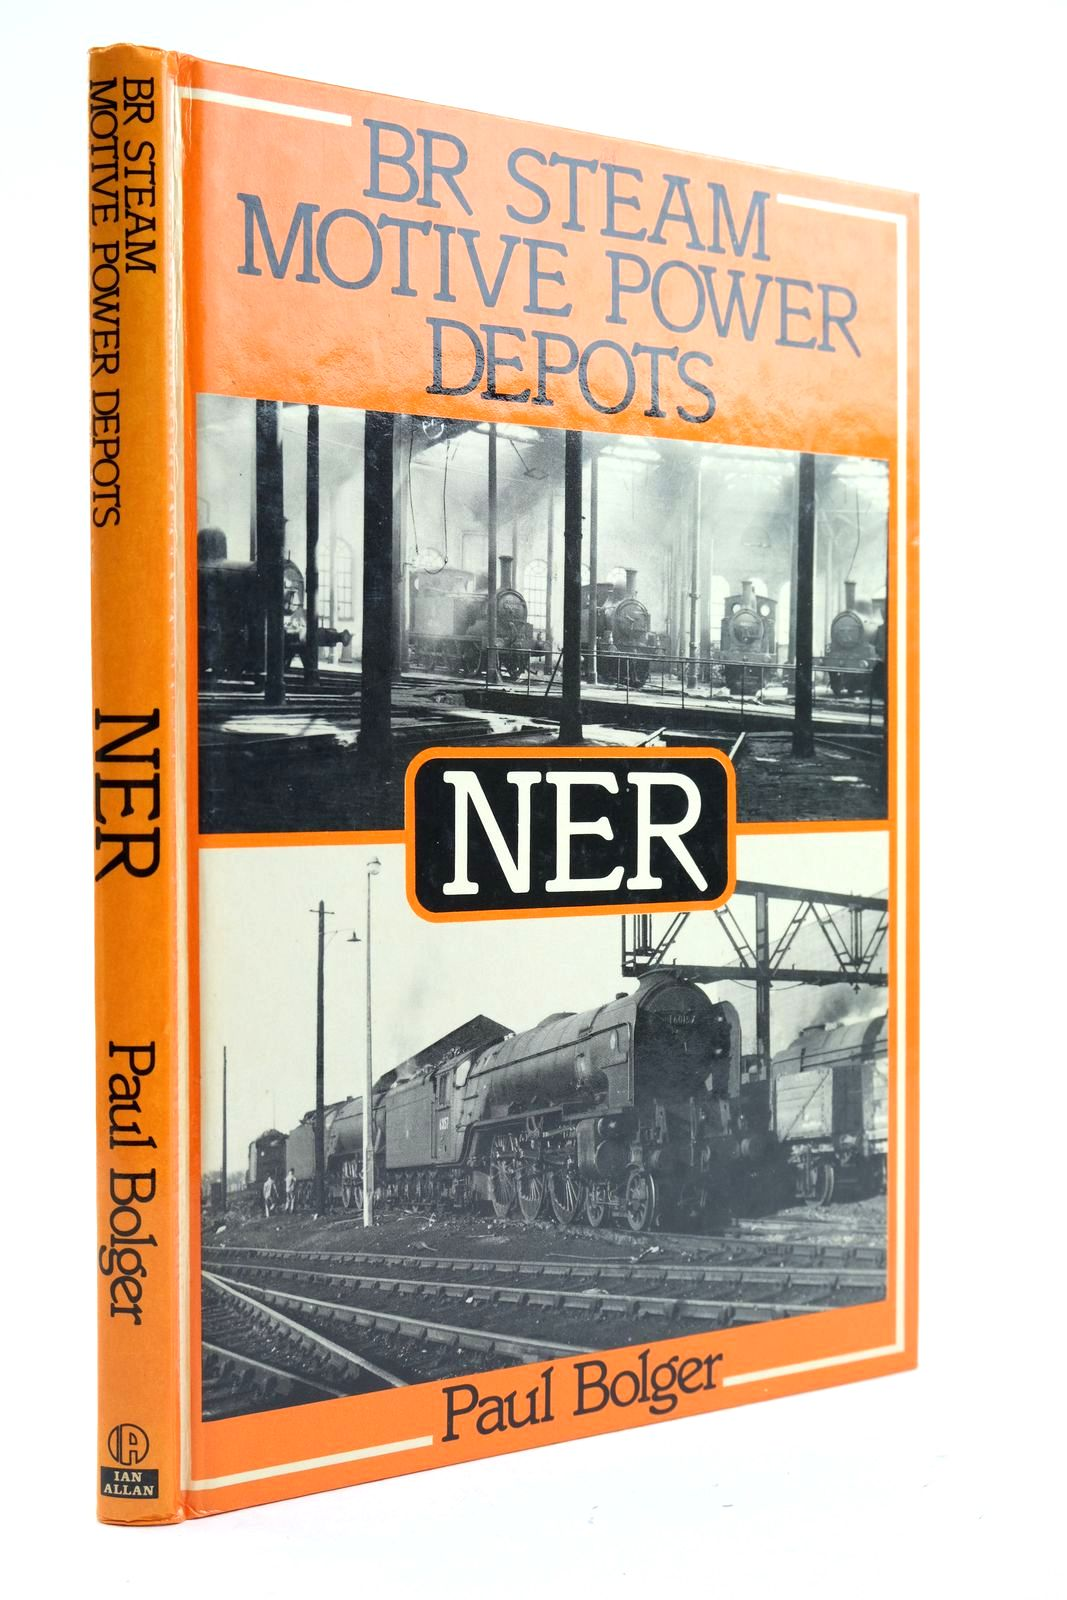 Photo of BR STEAM MOTIVE POWER DEPOTS NER- Stock Number: 2133023